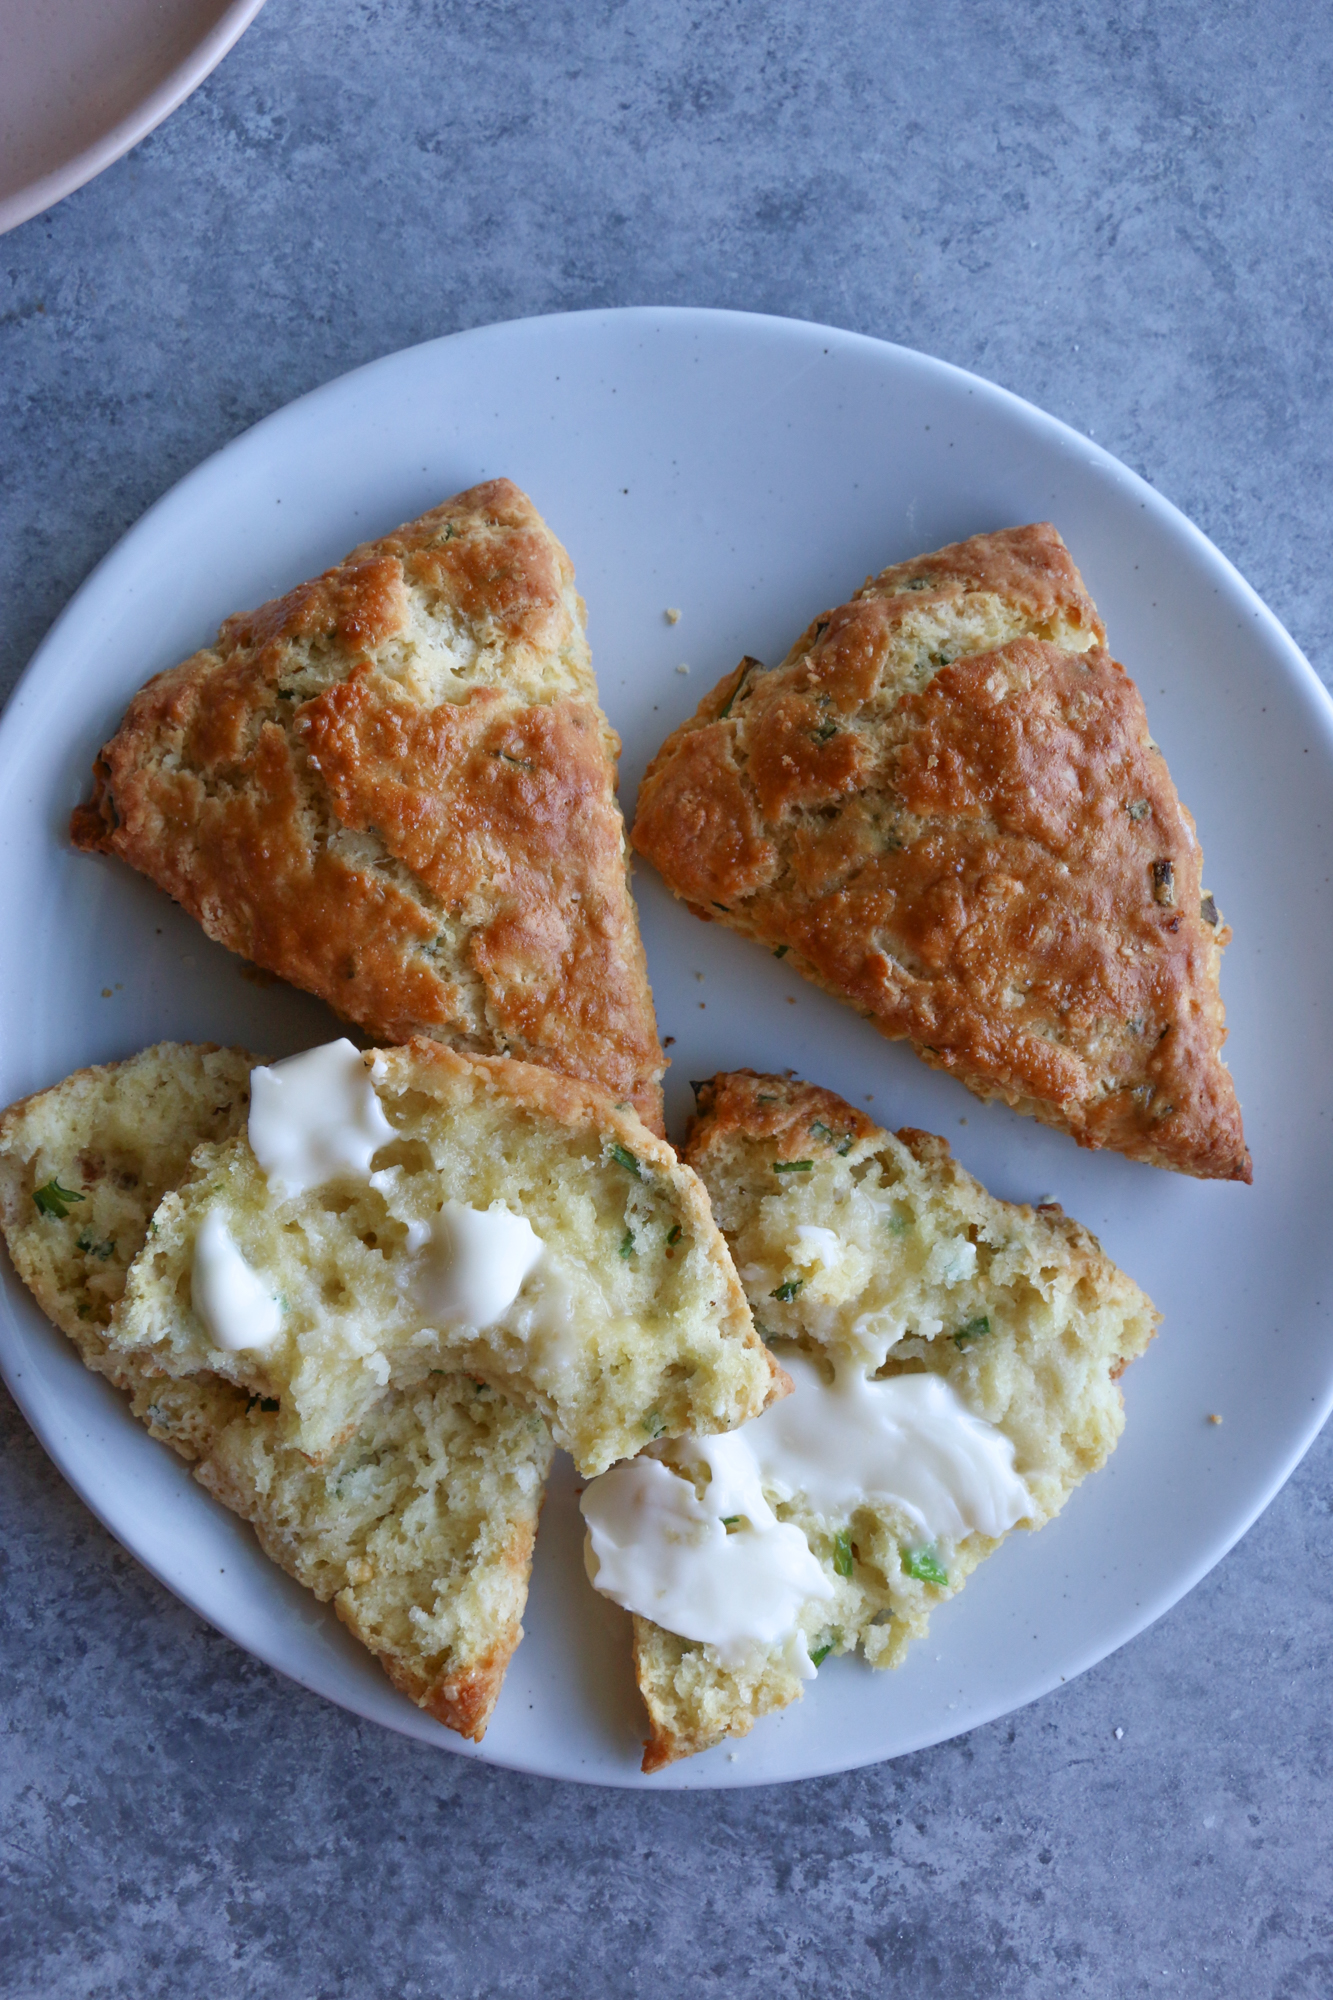 Brunch idea. How To Make Scones By Hand. Making scones can be a very relaxing and delicious way to serve something homemade for a snack, brunch or lunch.